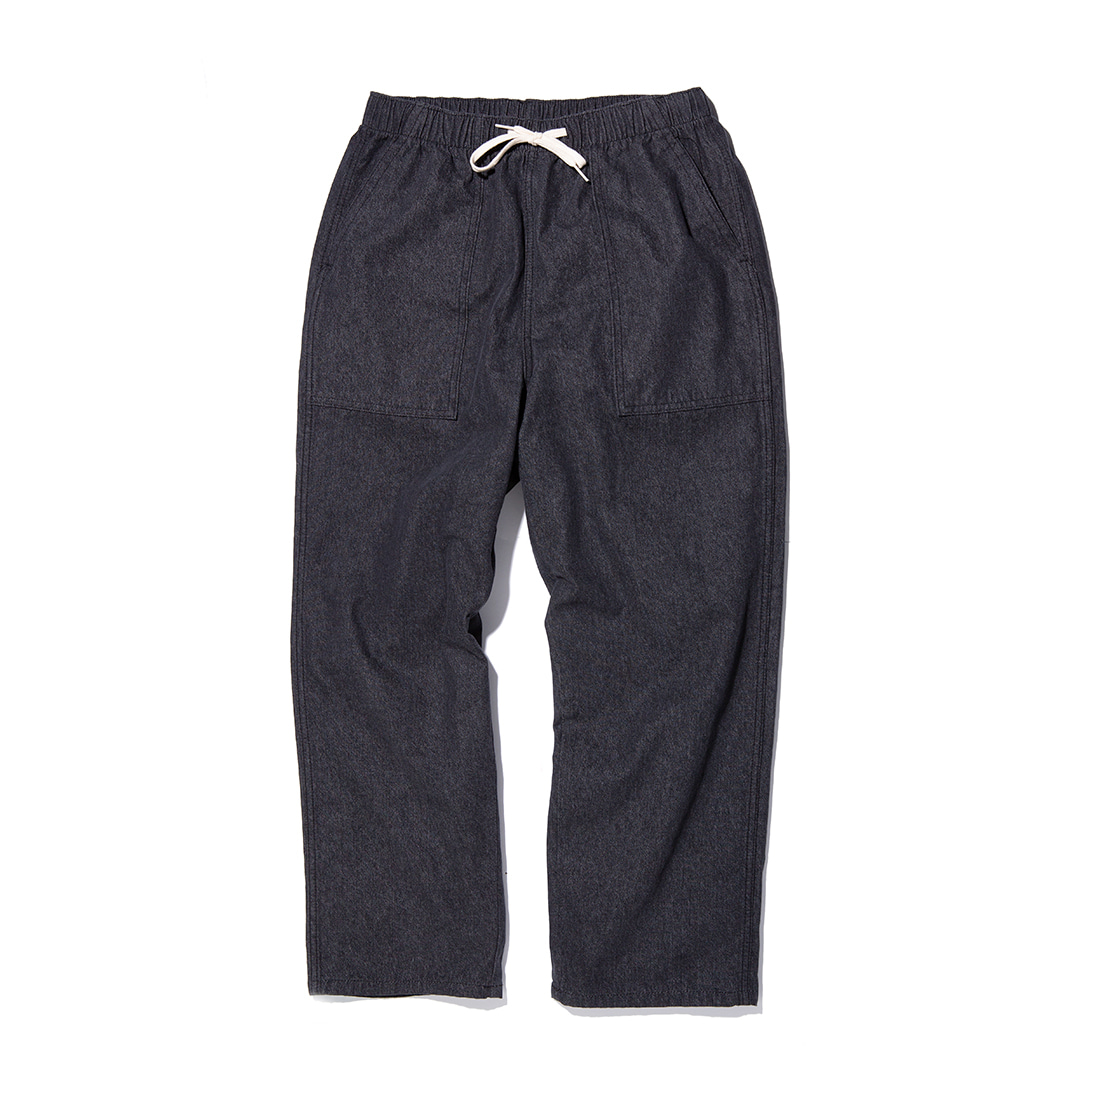 "Ocean Fatigue Pants ""BLACK DENIM"""